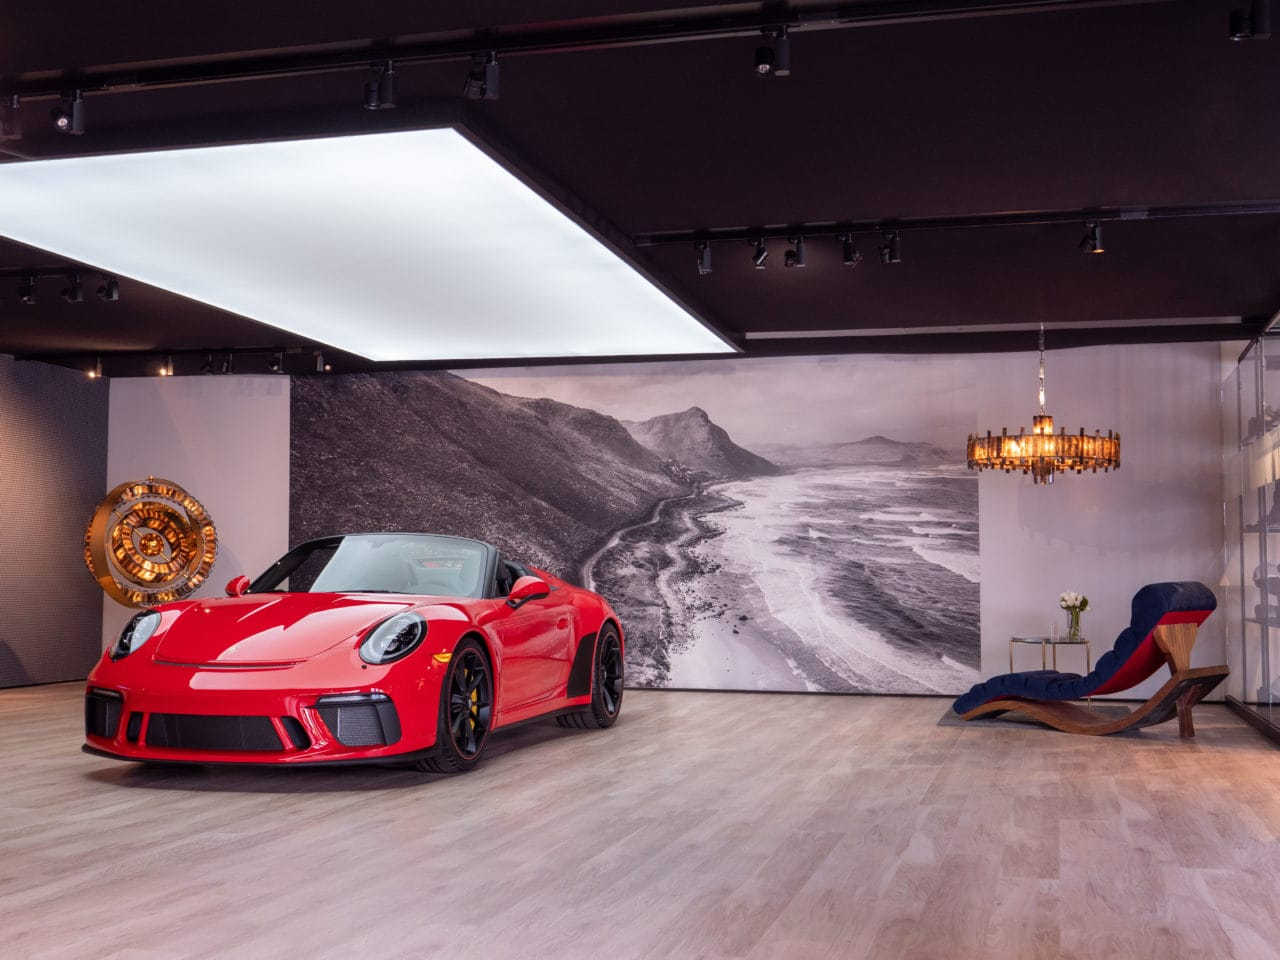 Red Porsche in car exhibition room with luxury blue SENTIENT Wave contemporary custom chair and landscape mural